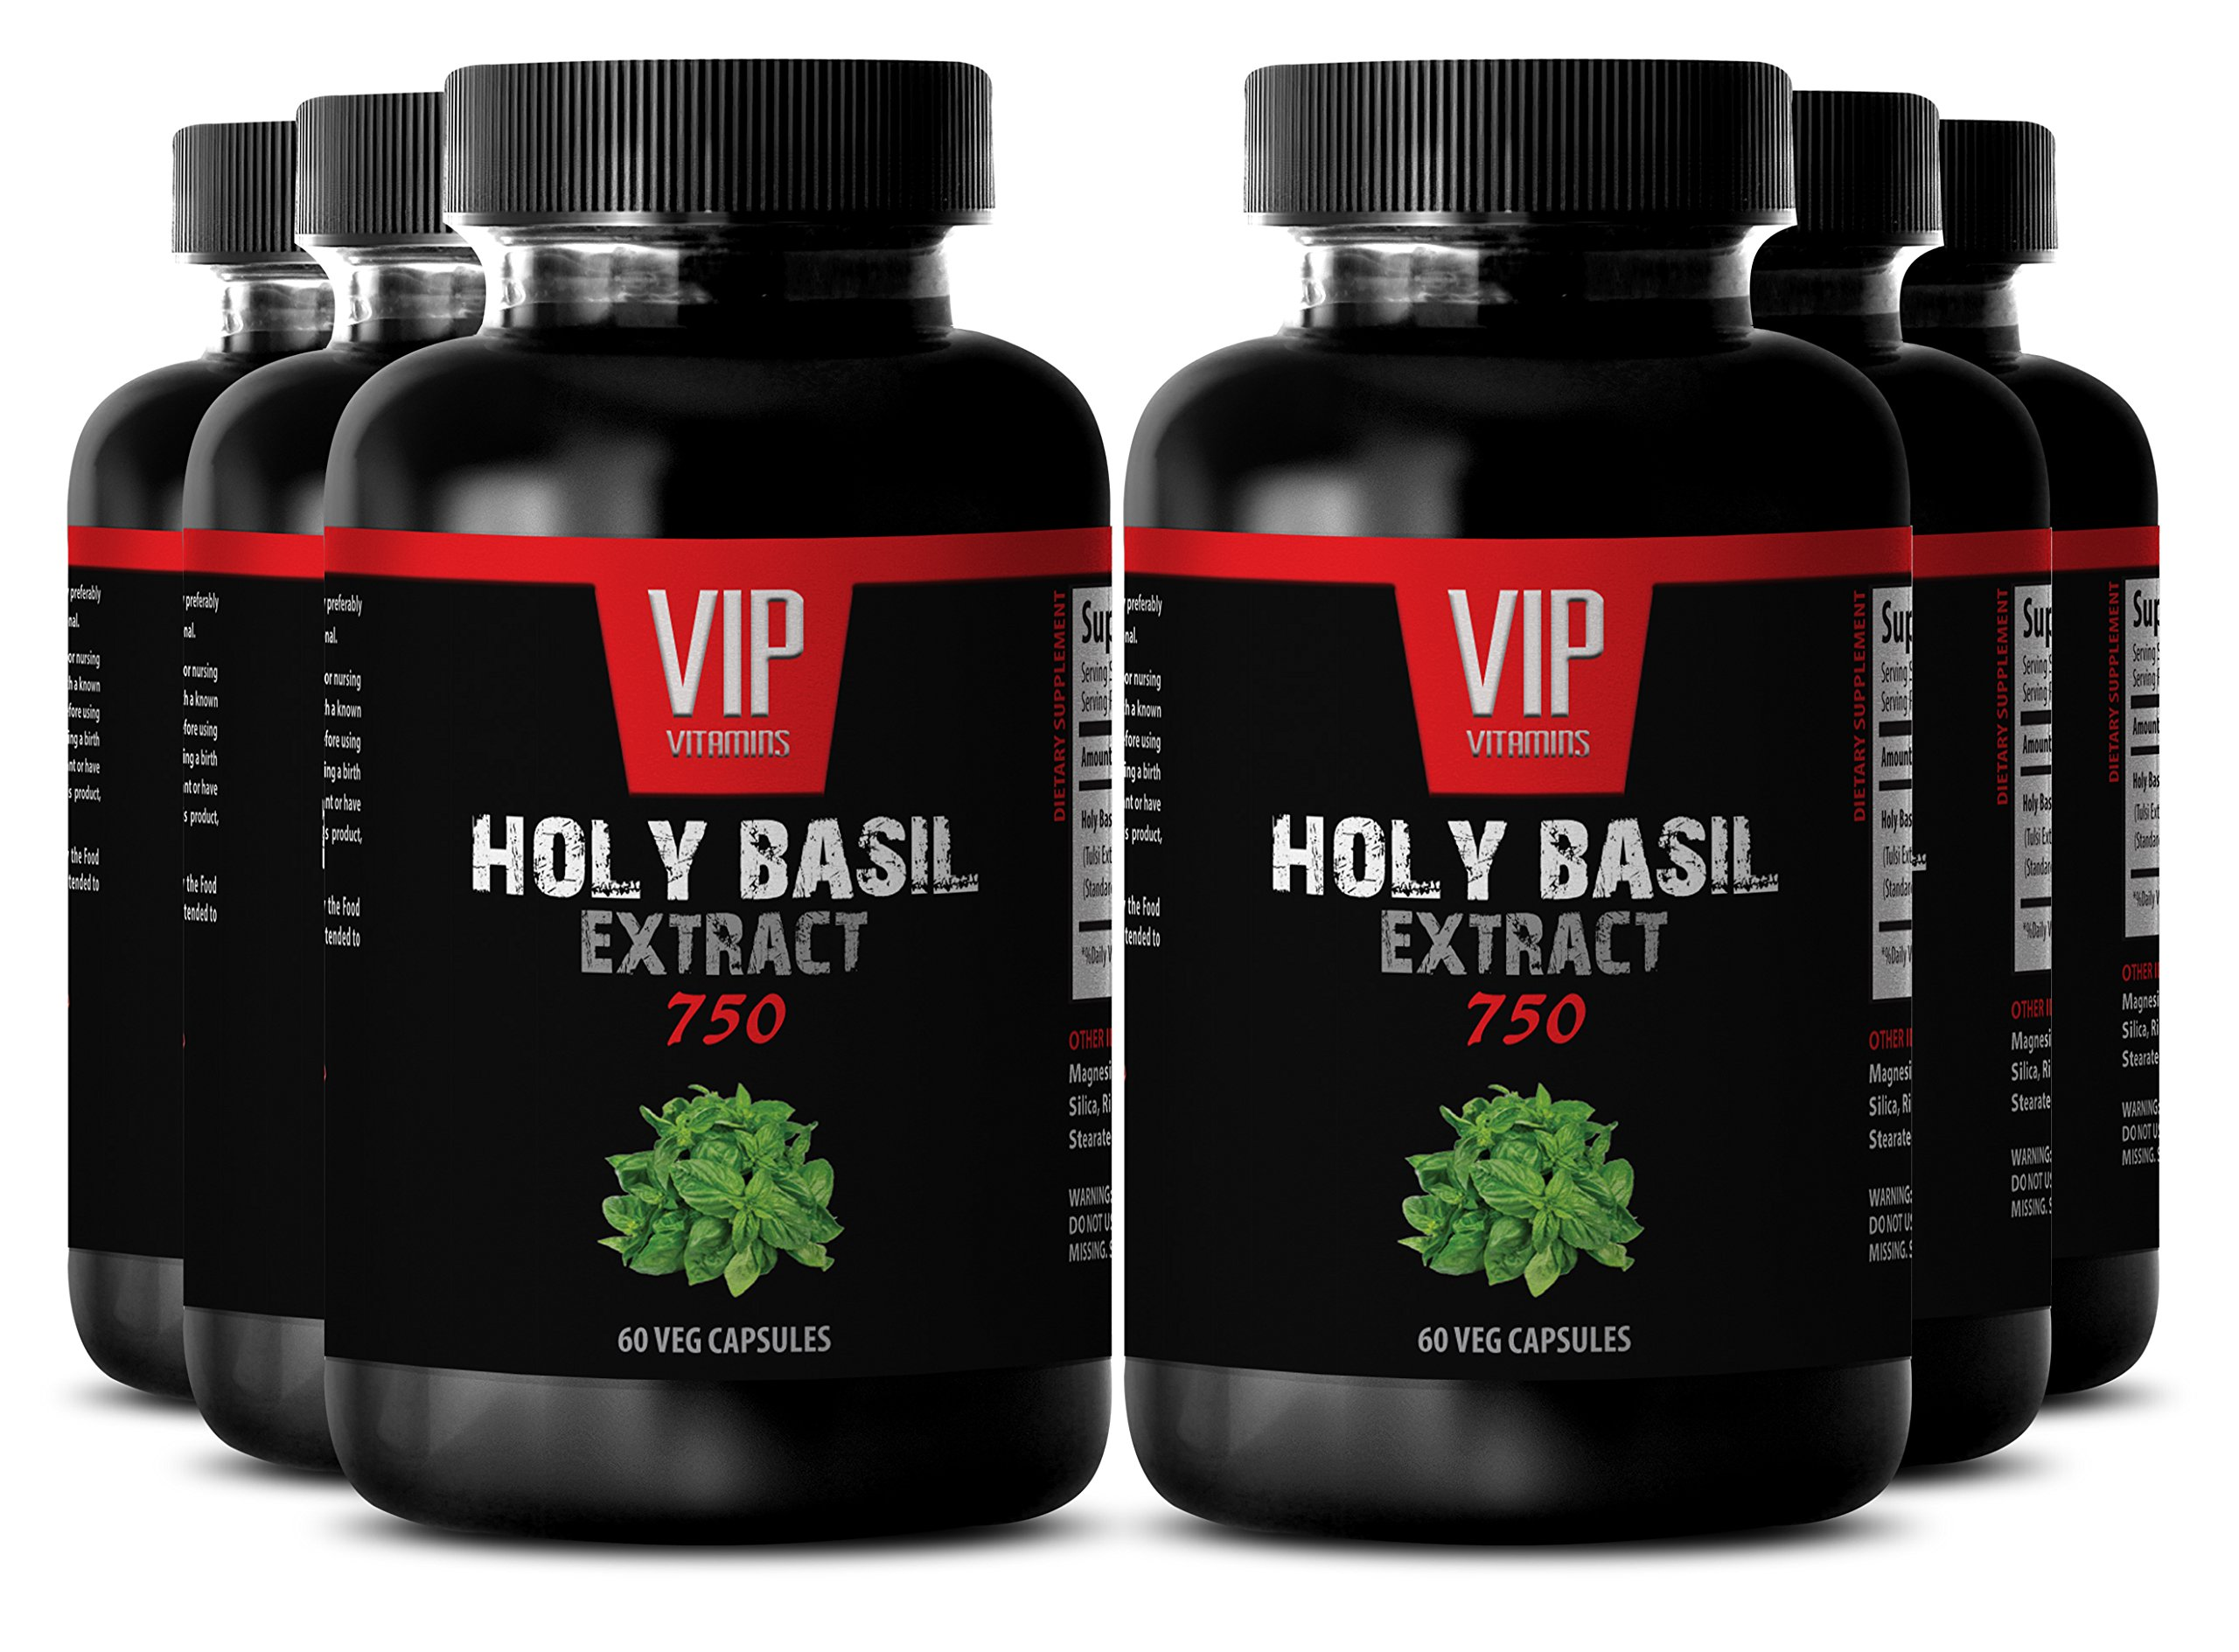 Respiratory supplements - HOLY BASIL EXTRACT 750 - immune system booster - 6 Bottles 360 Veg. Capsules